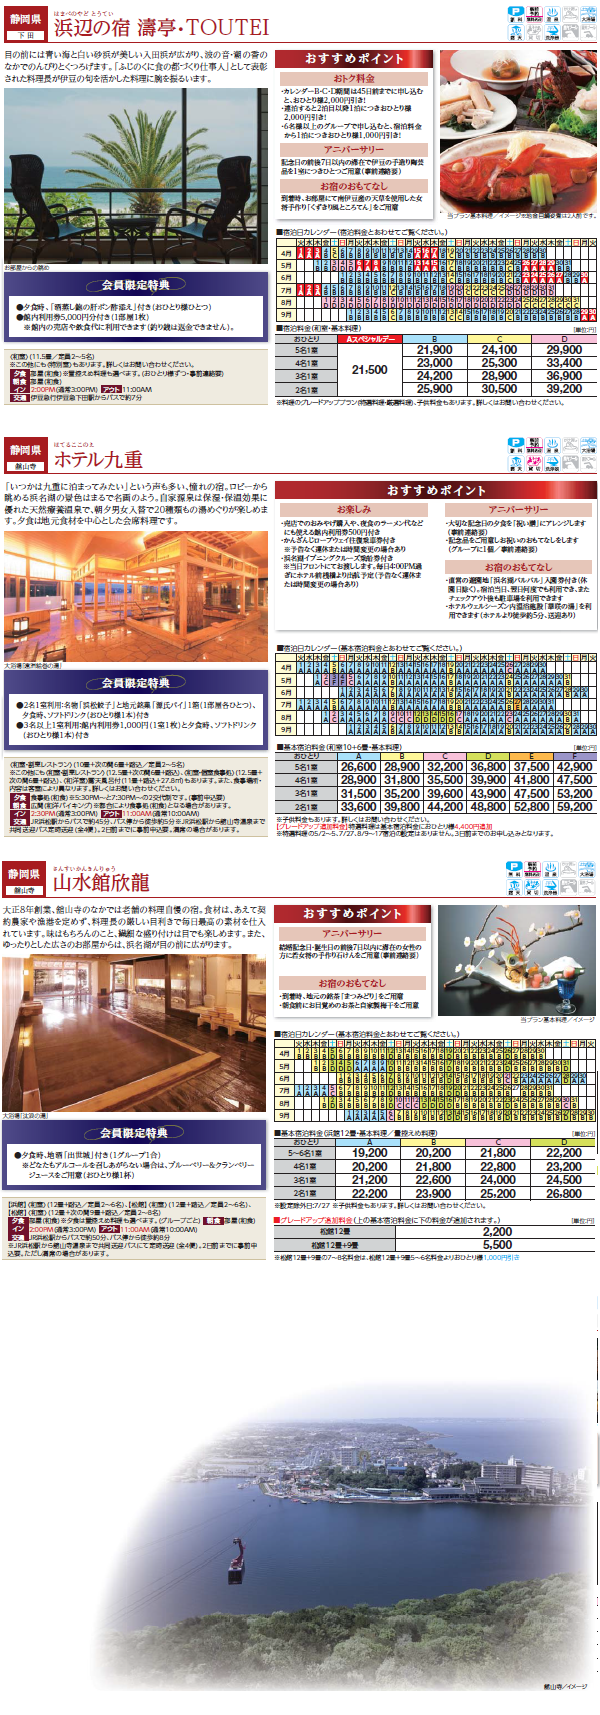 stay_plan_ryokan_1403_11